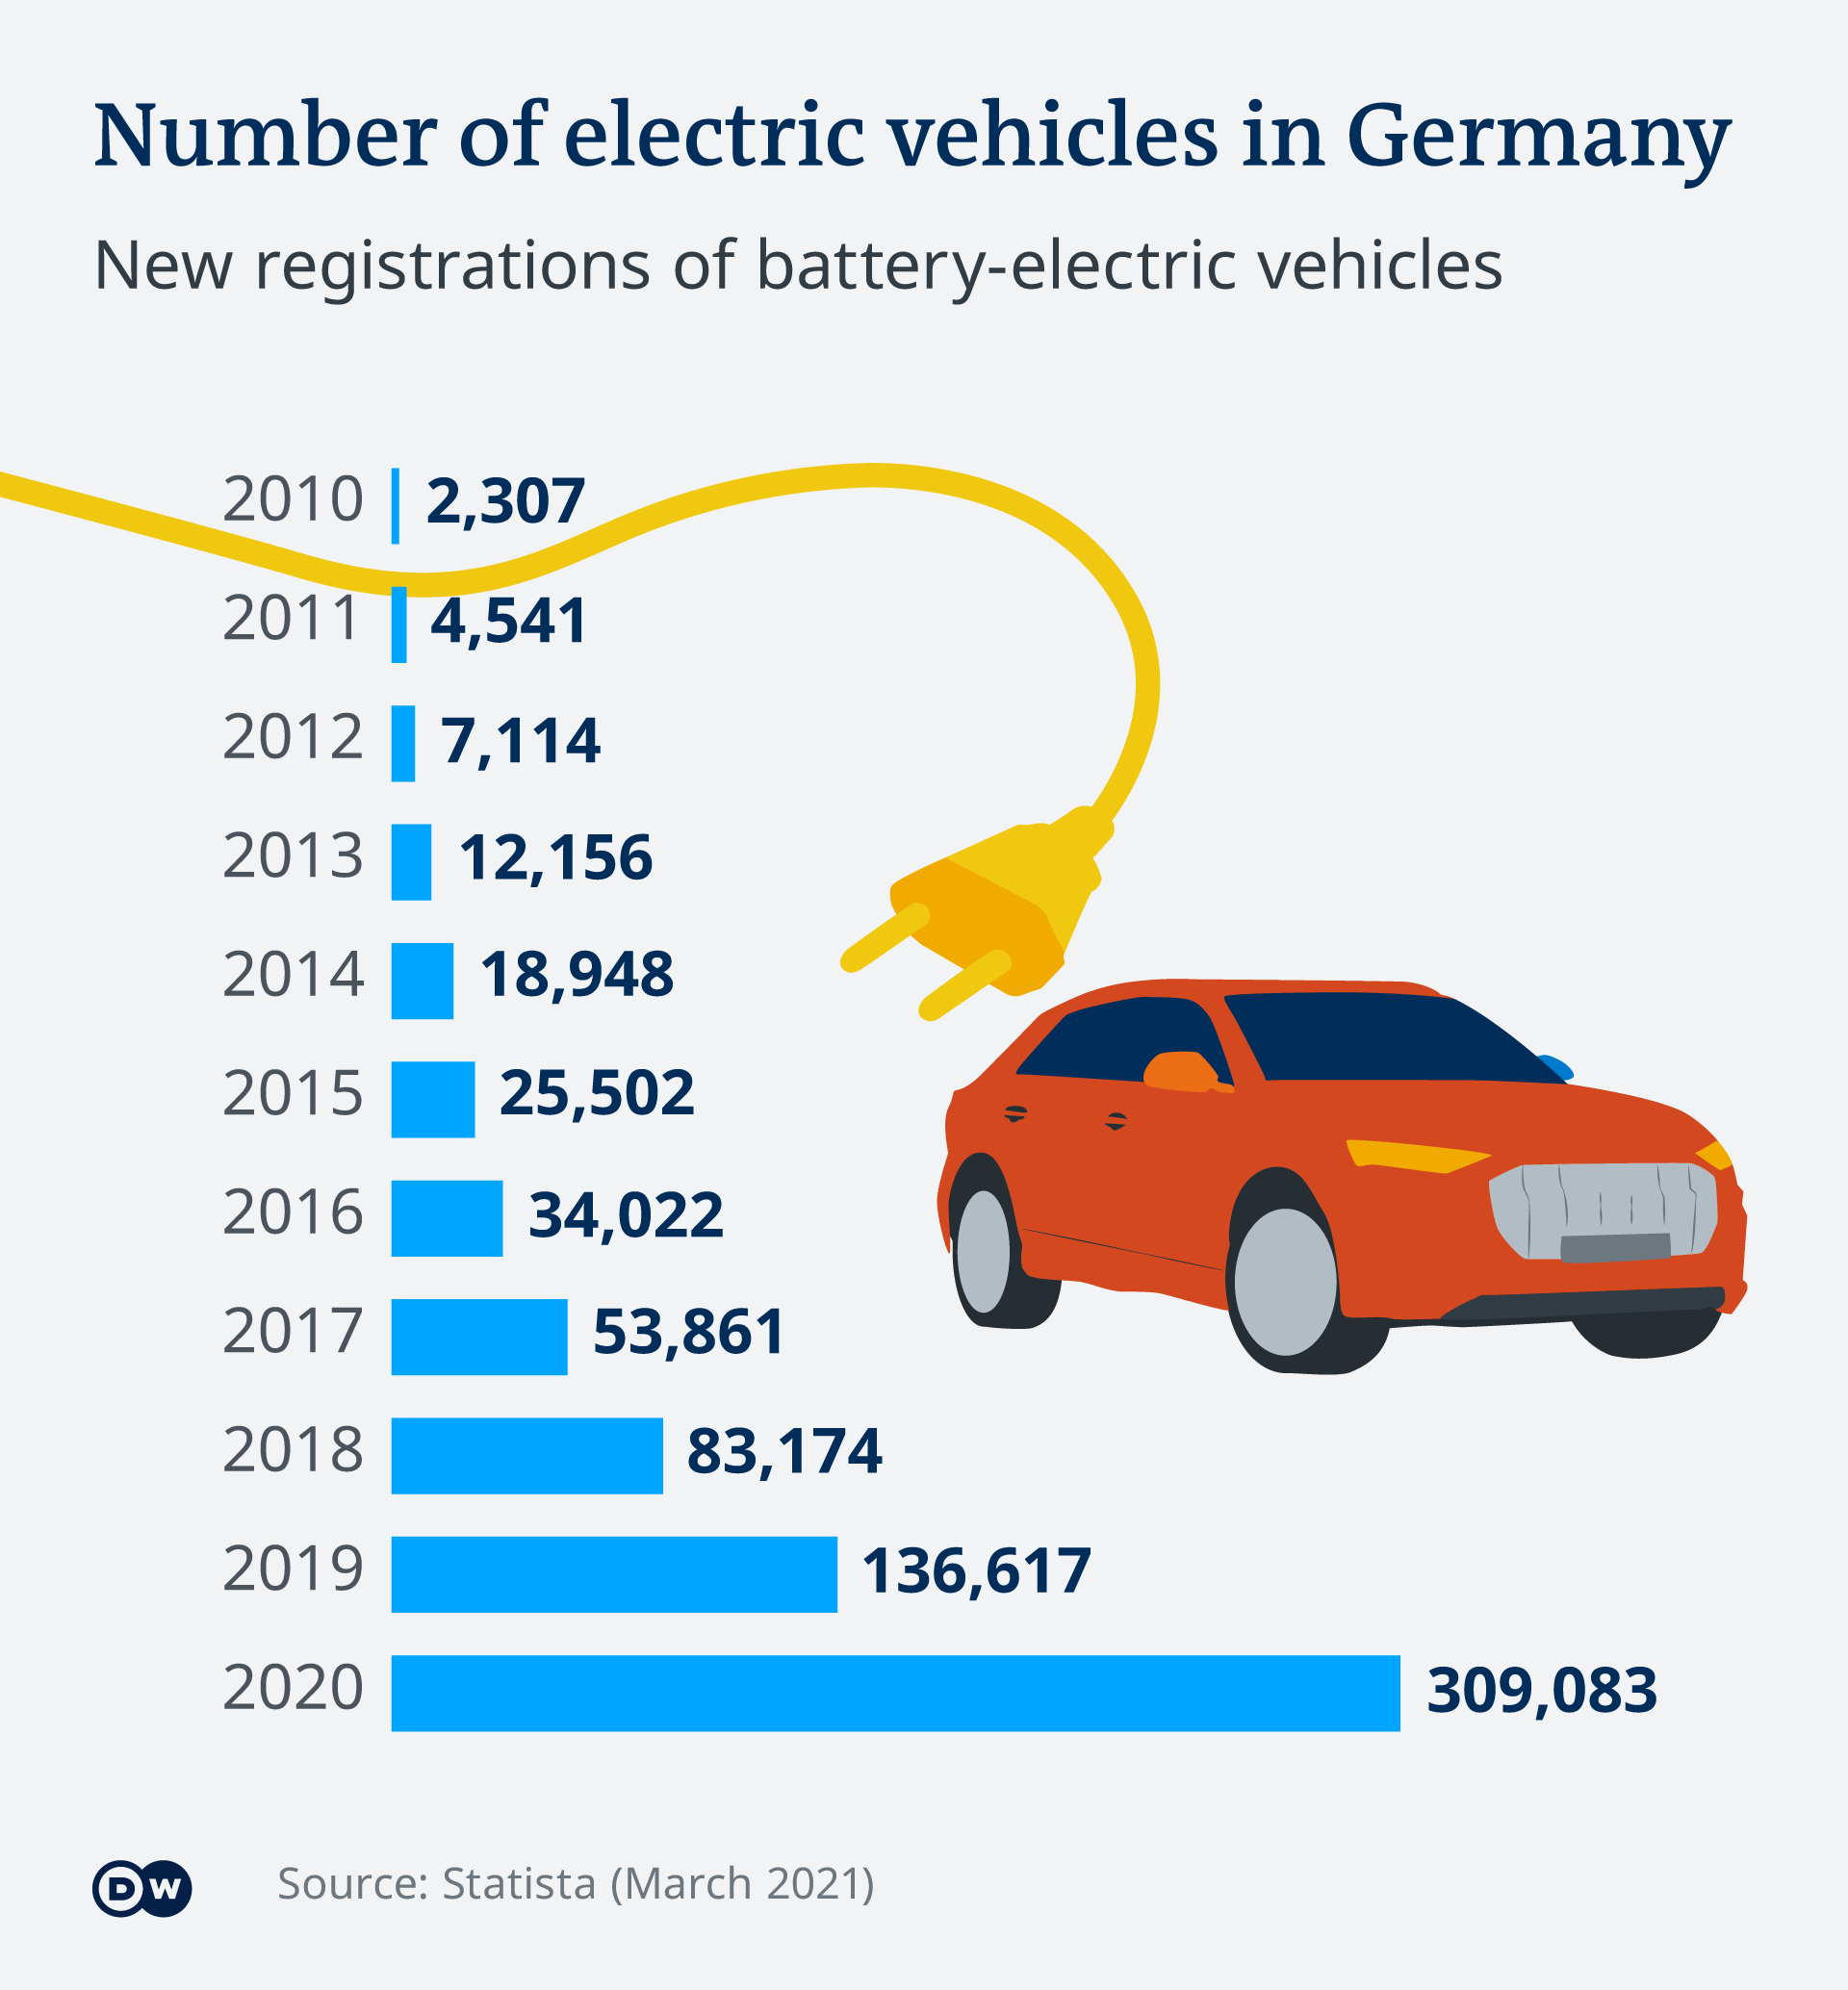 Number of newly registered battery-electric vehicles in Germany